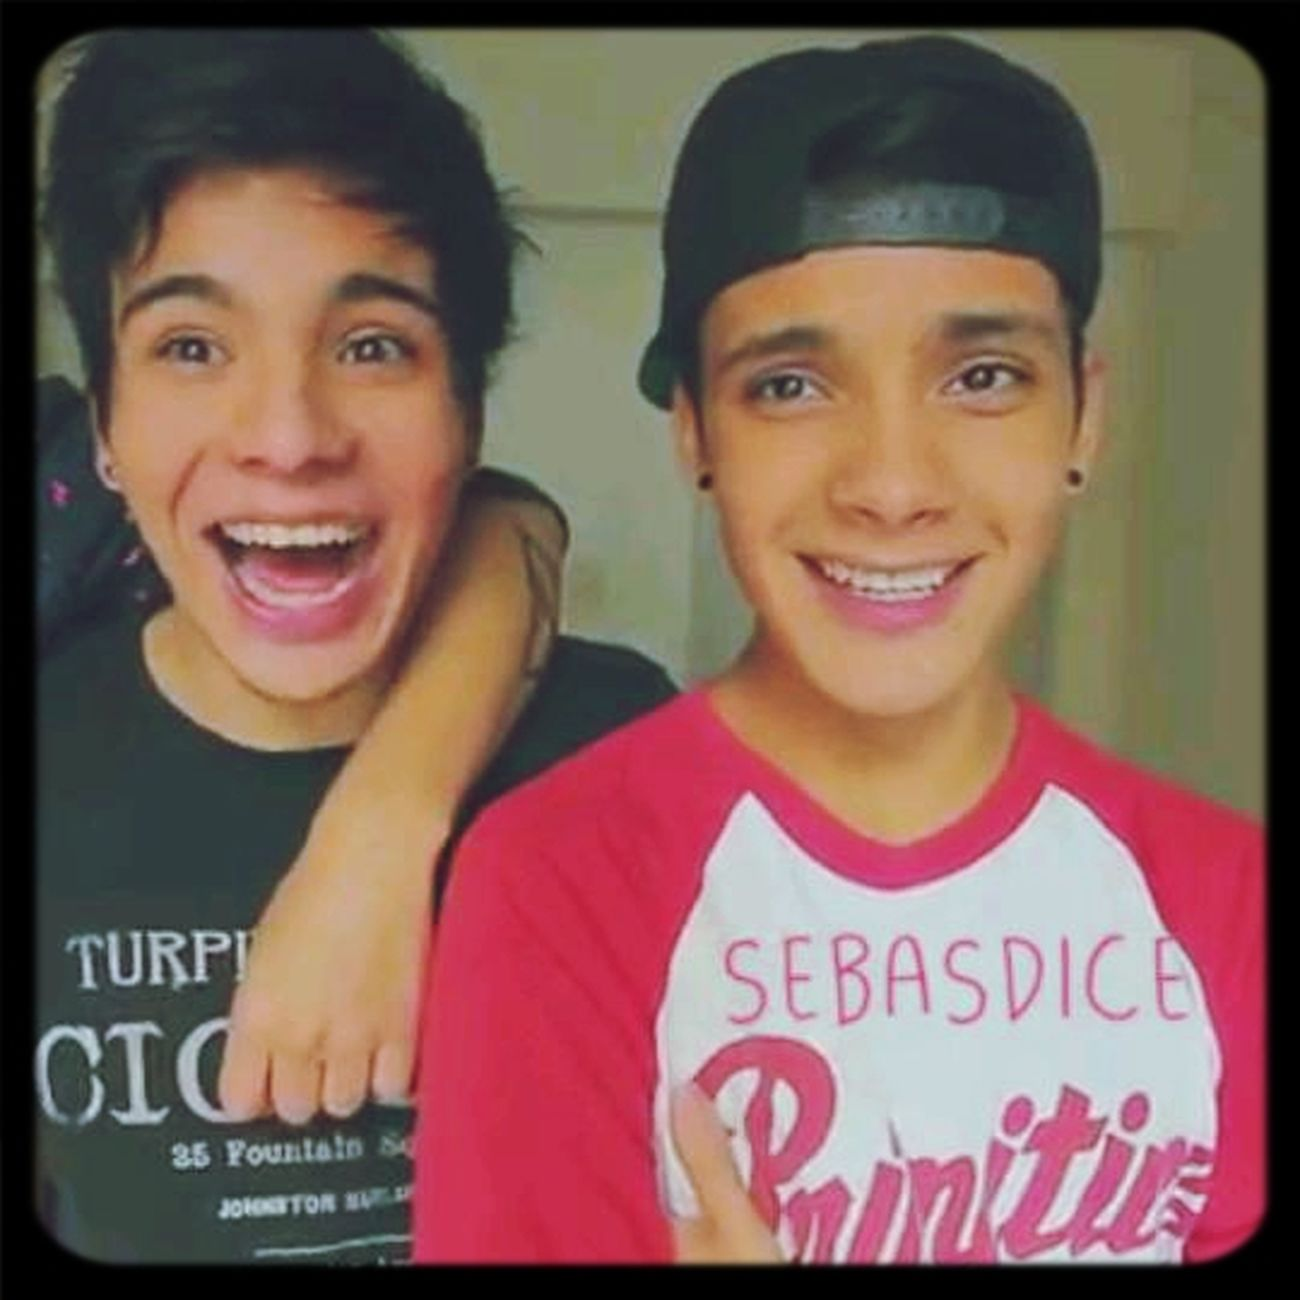 Son tan perfectos:3 Sebasdice Sebastian Villalobos Youtube Friends